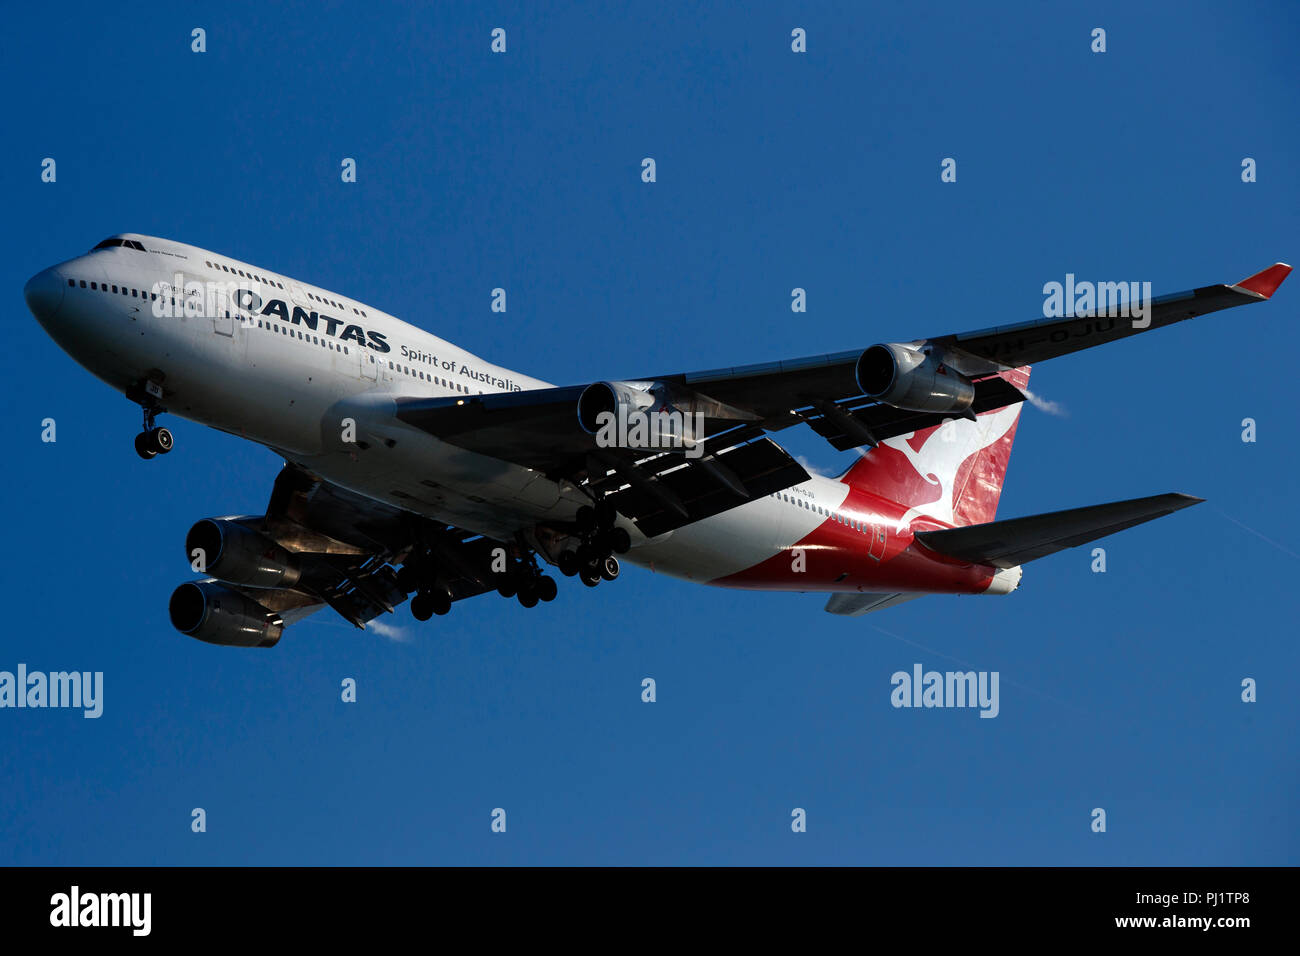 Boeing 747-438 (VH-OJU) operated by Qantas on approach to San Francisco International Airport (SFO), San Francisco, California, United States of America - Stock Image